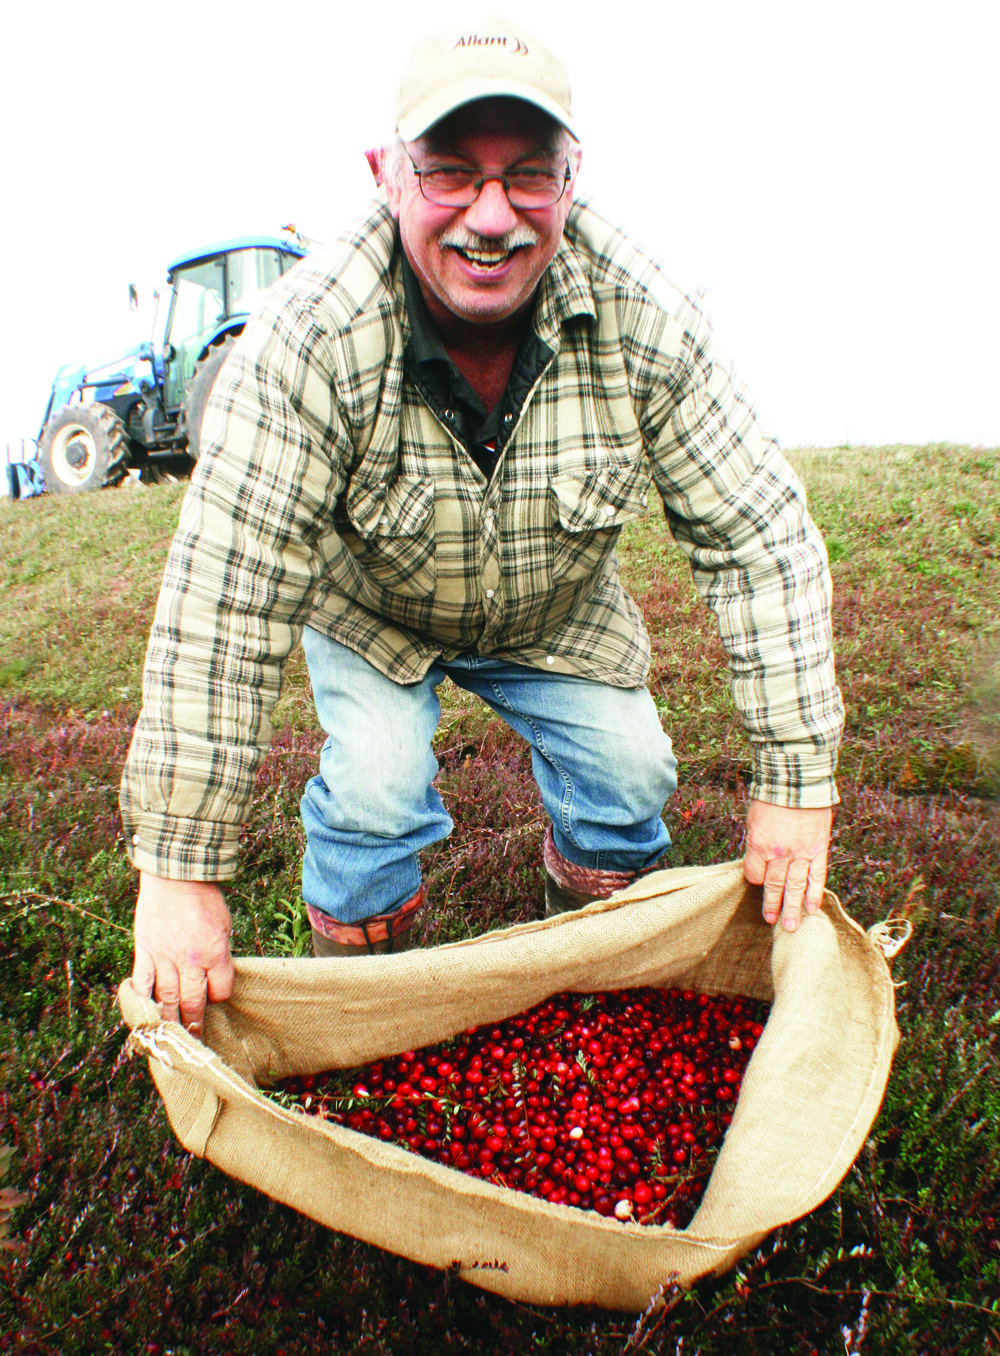 b17bd7e0e6974 Melvin Goodland with a burlap bag full of bright red cranberries. The  cranberries are harvested